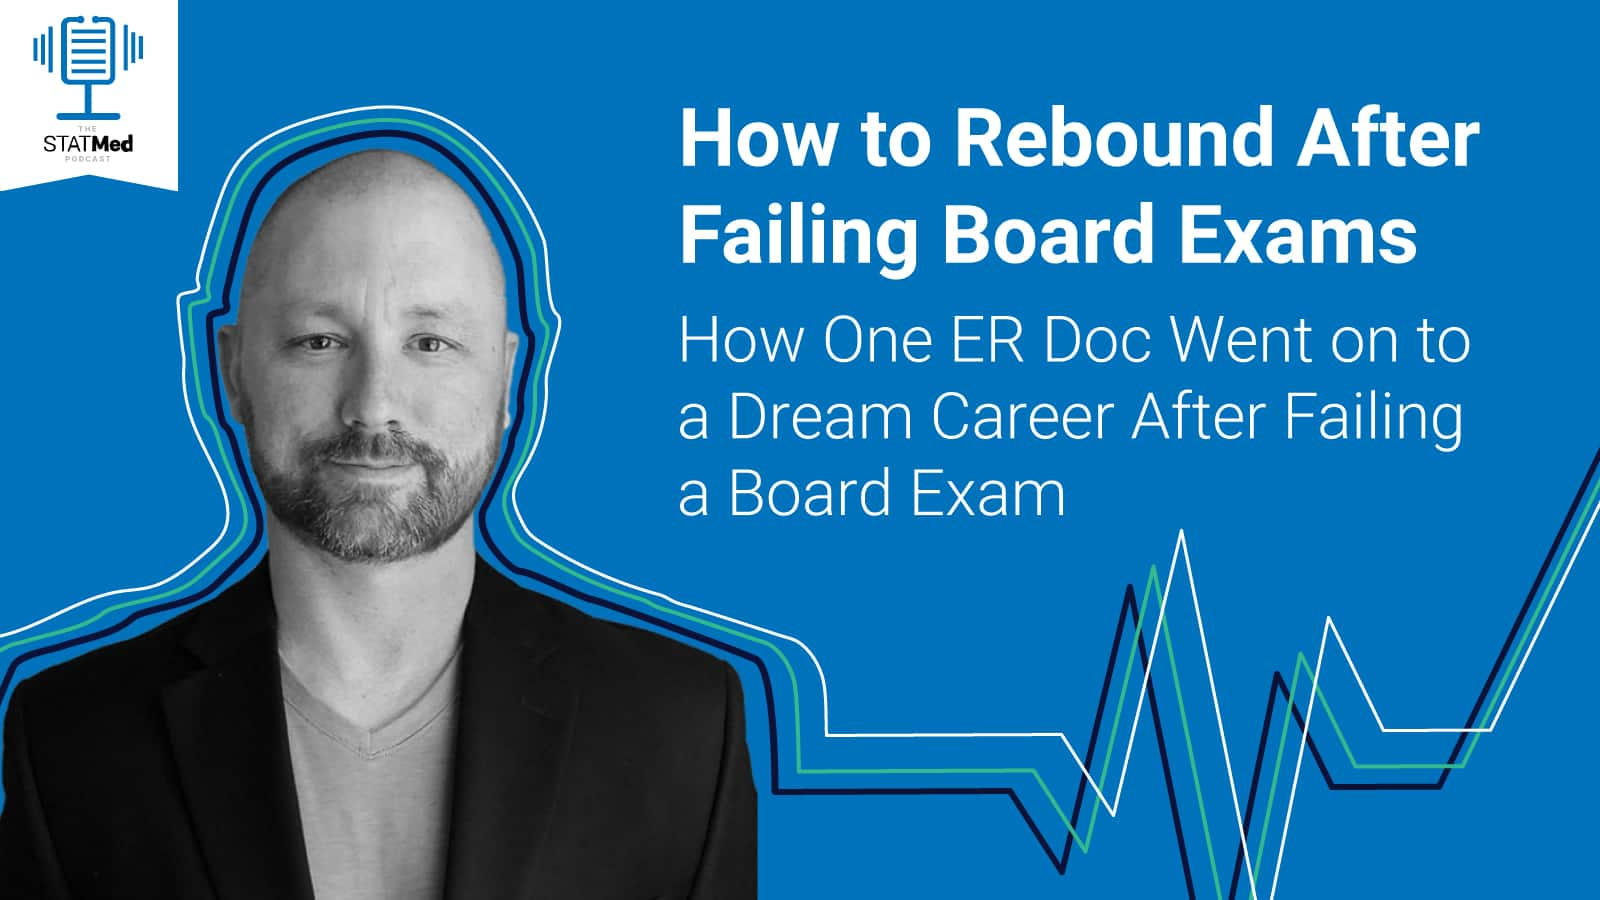 STATMed Podcast host Ryan Orwig reviews how one ER doc went on to success after failed board exams.